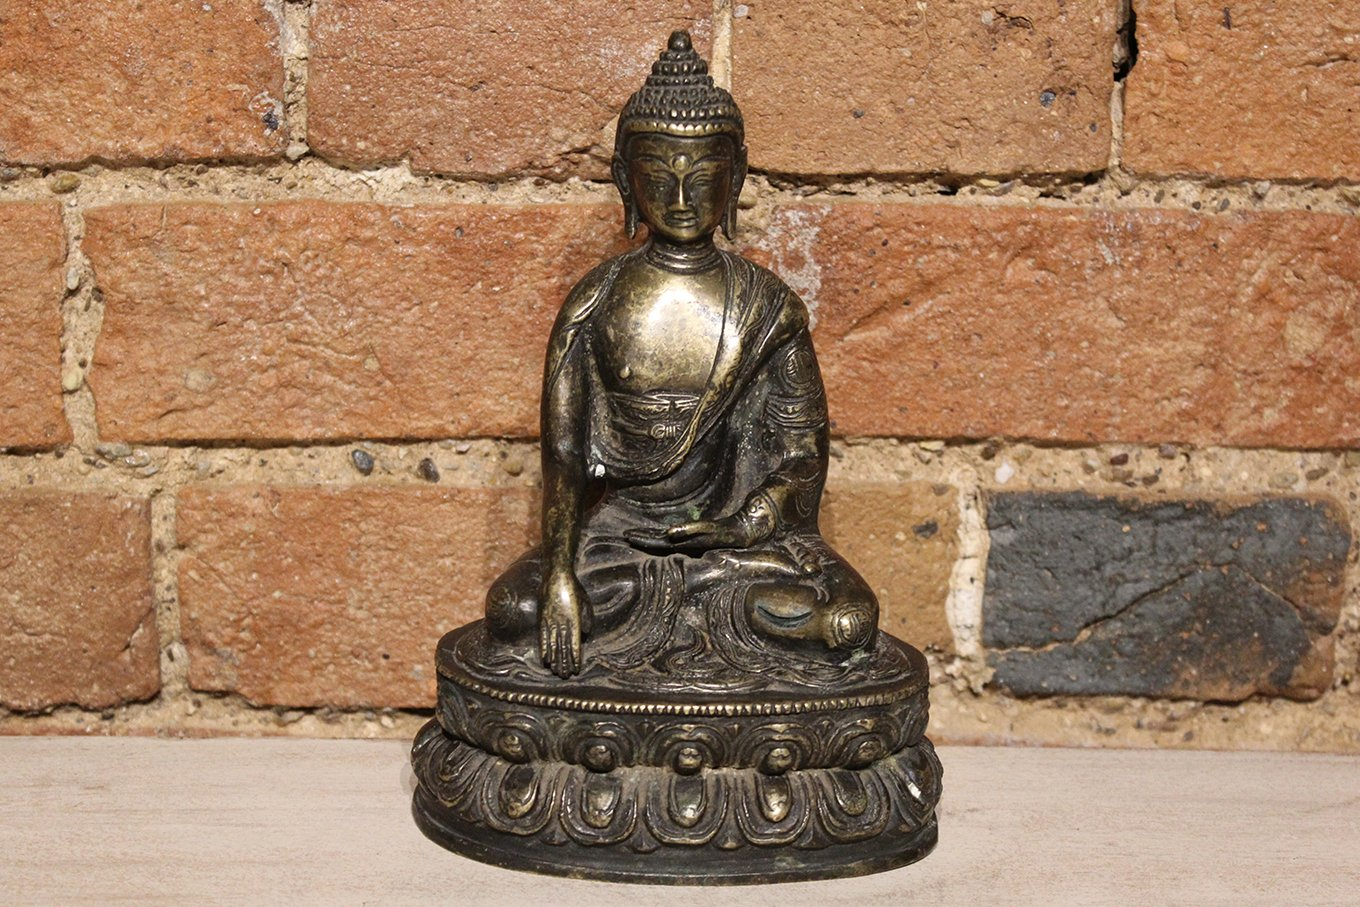 Antique bronze Buddha on lotus flower pedestal